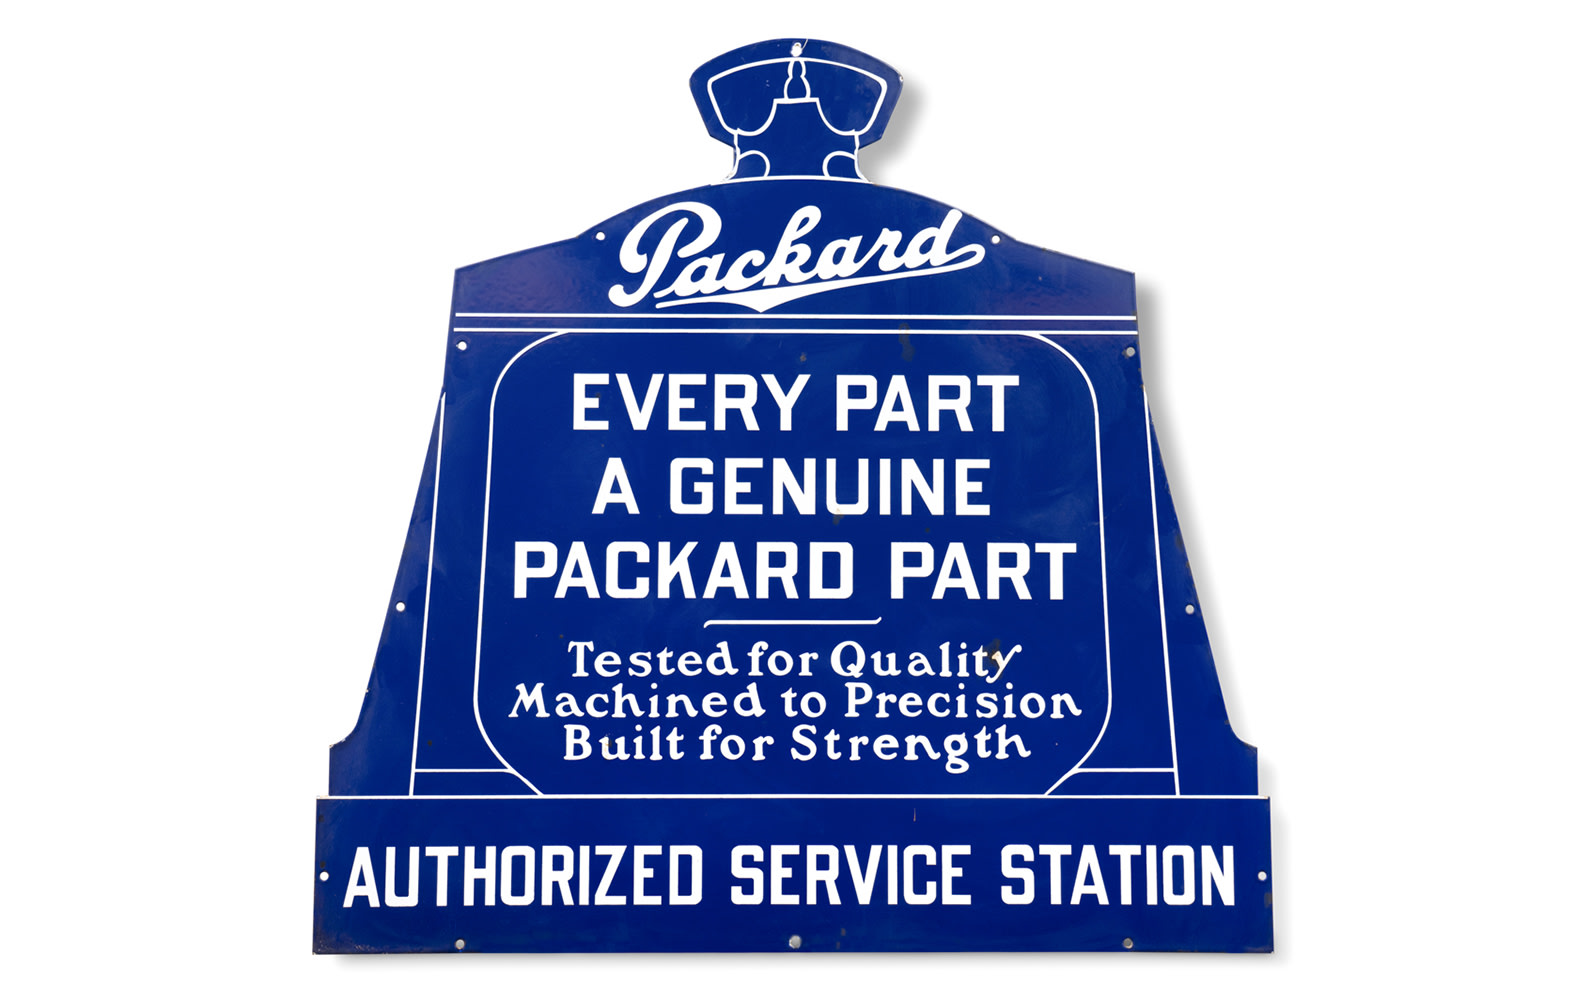 Packard Authorized Service Station Sign